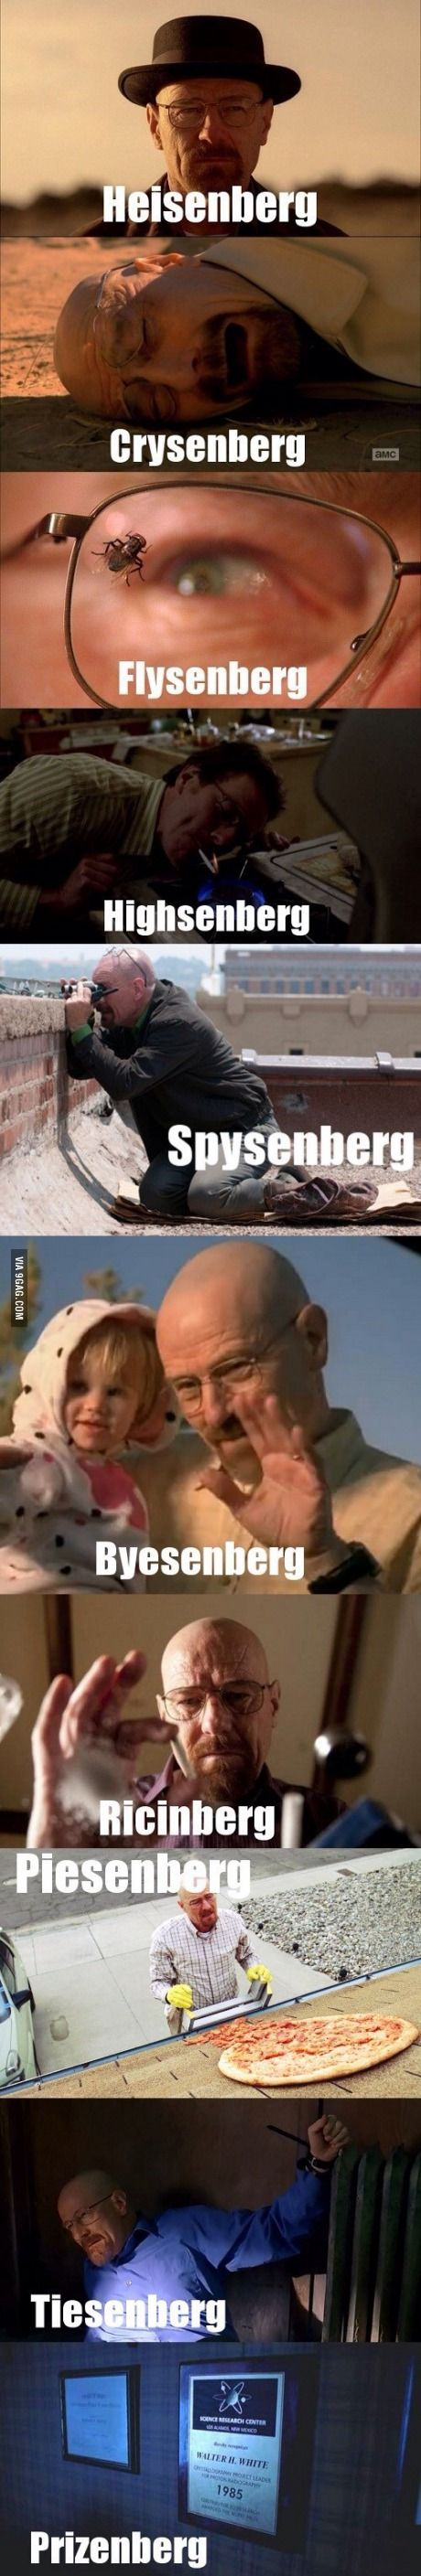 The many faces of Walter White - http://geekstumbles.com/funny/the-many-faces-of-walter-white/